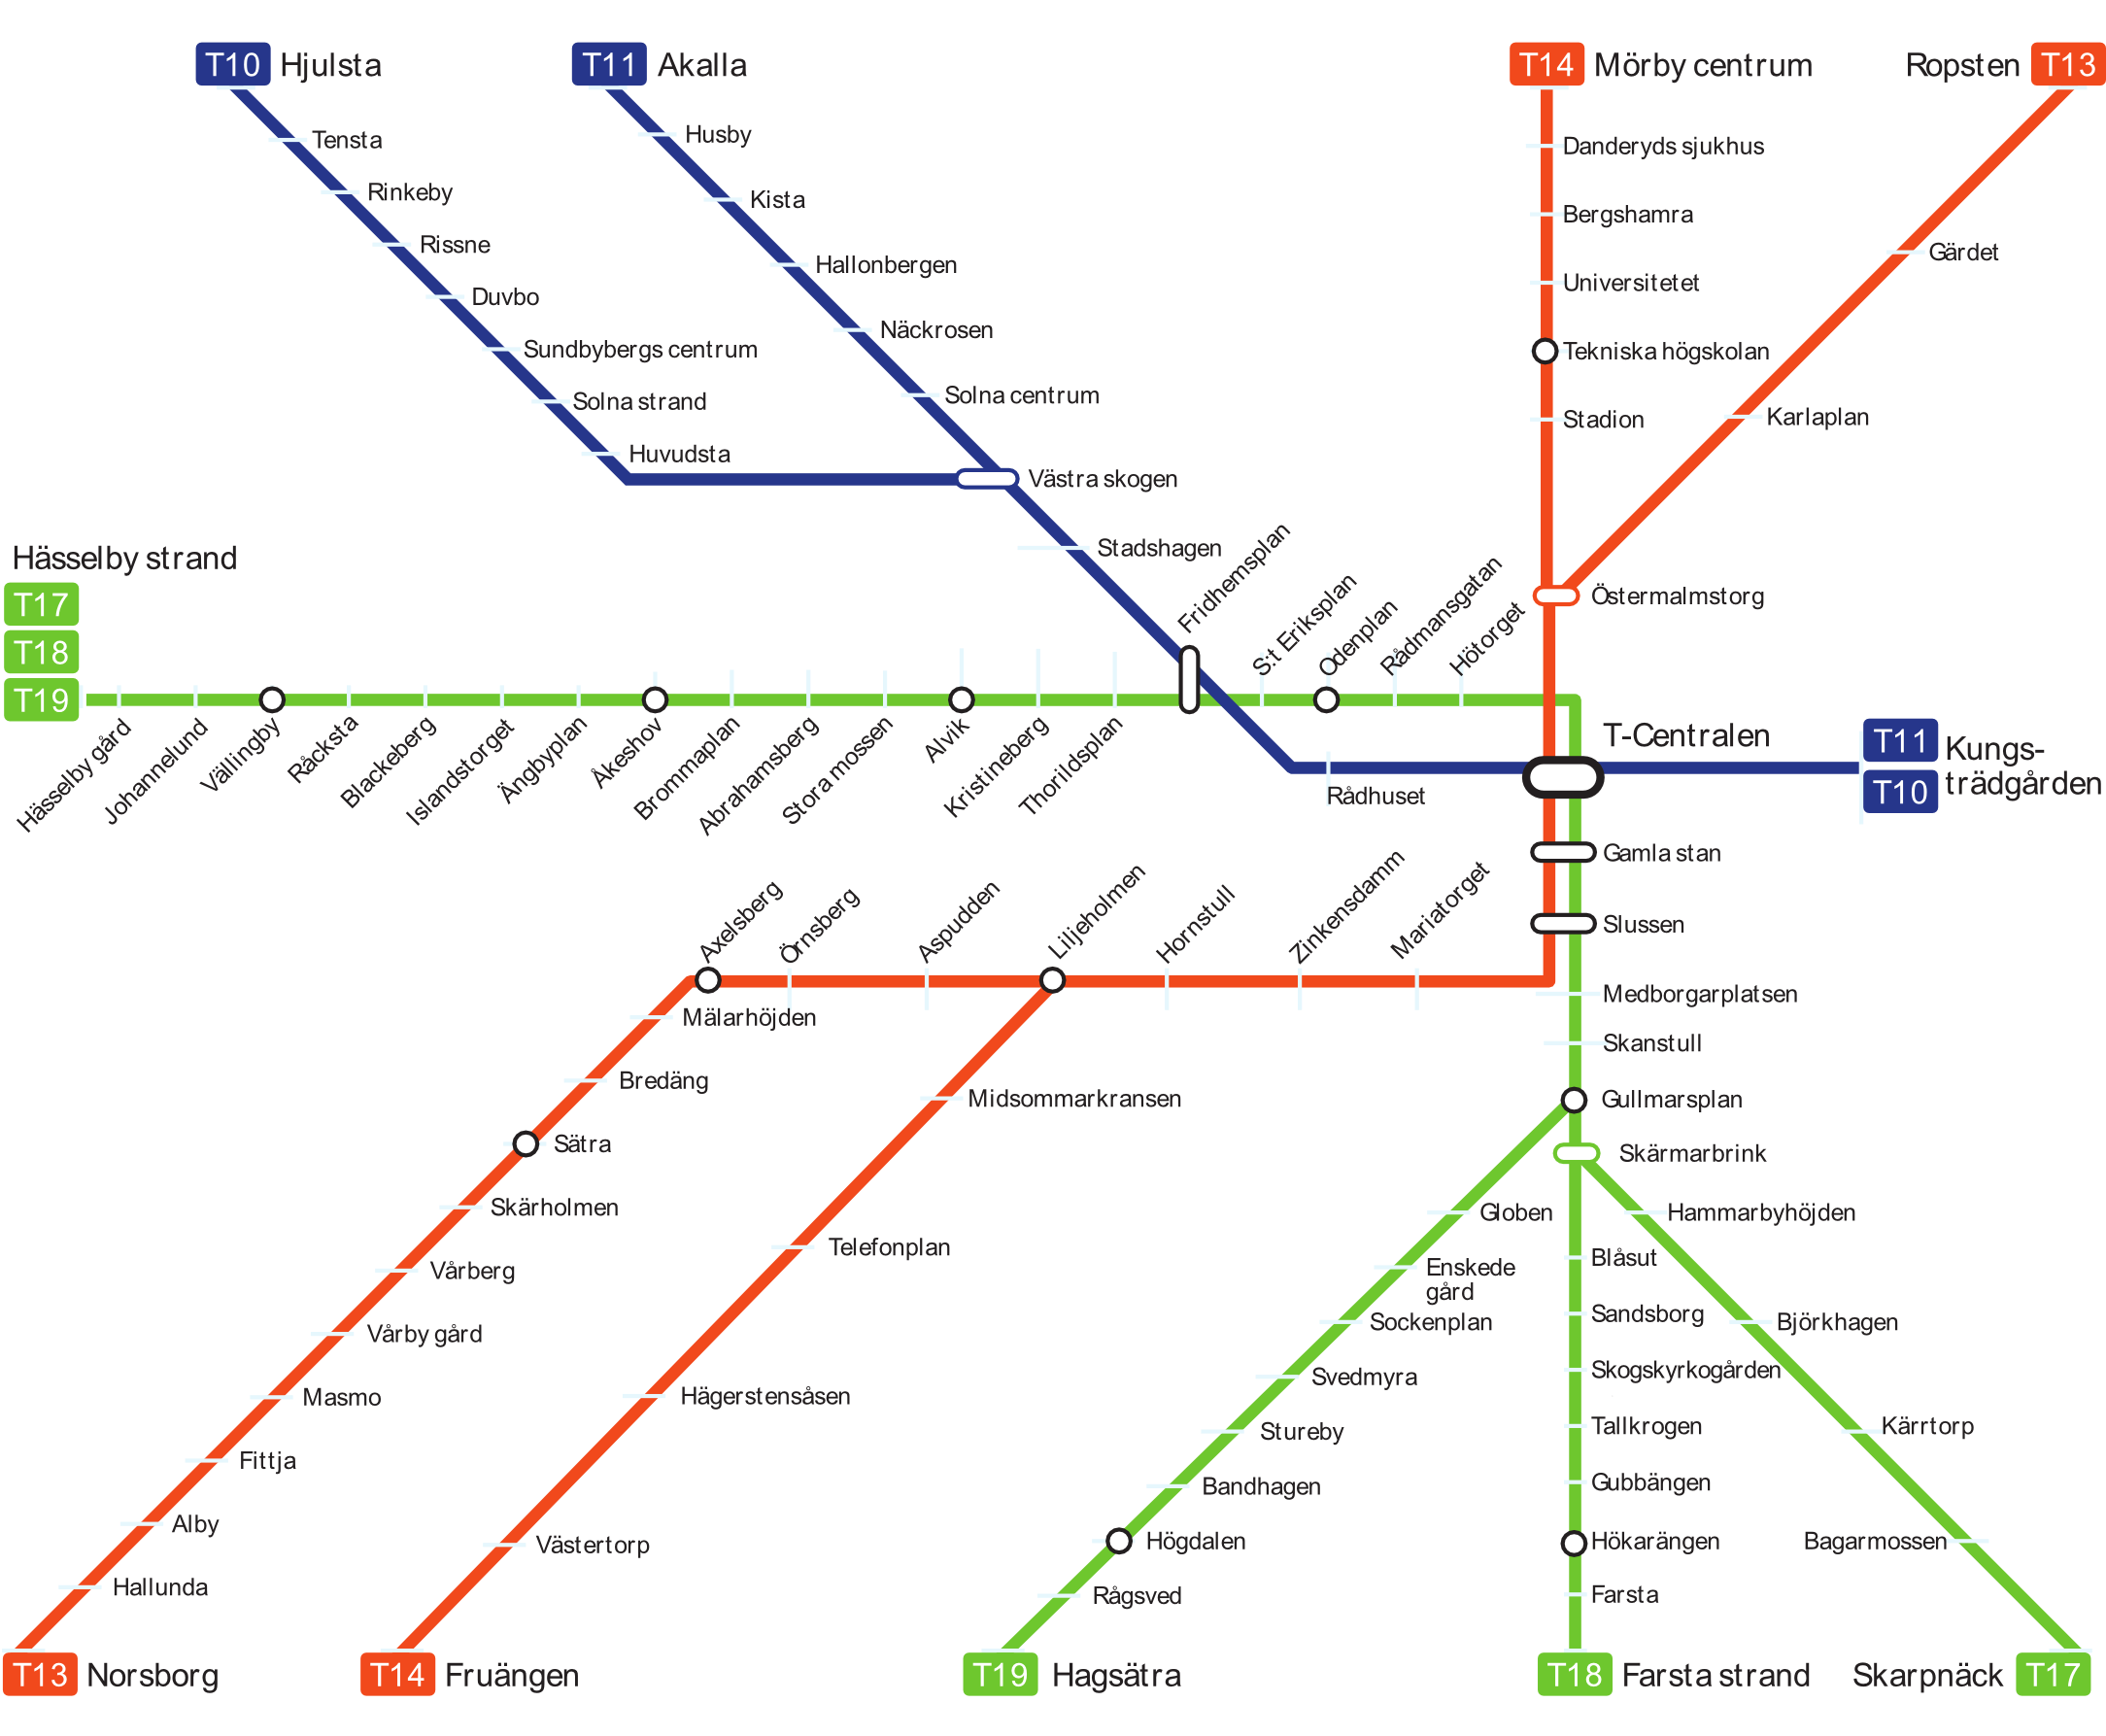 Sweden Subway Map.Stockholm Sweden Metasub